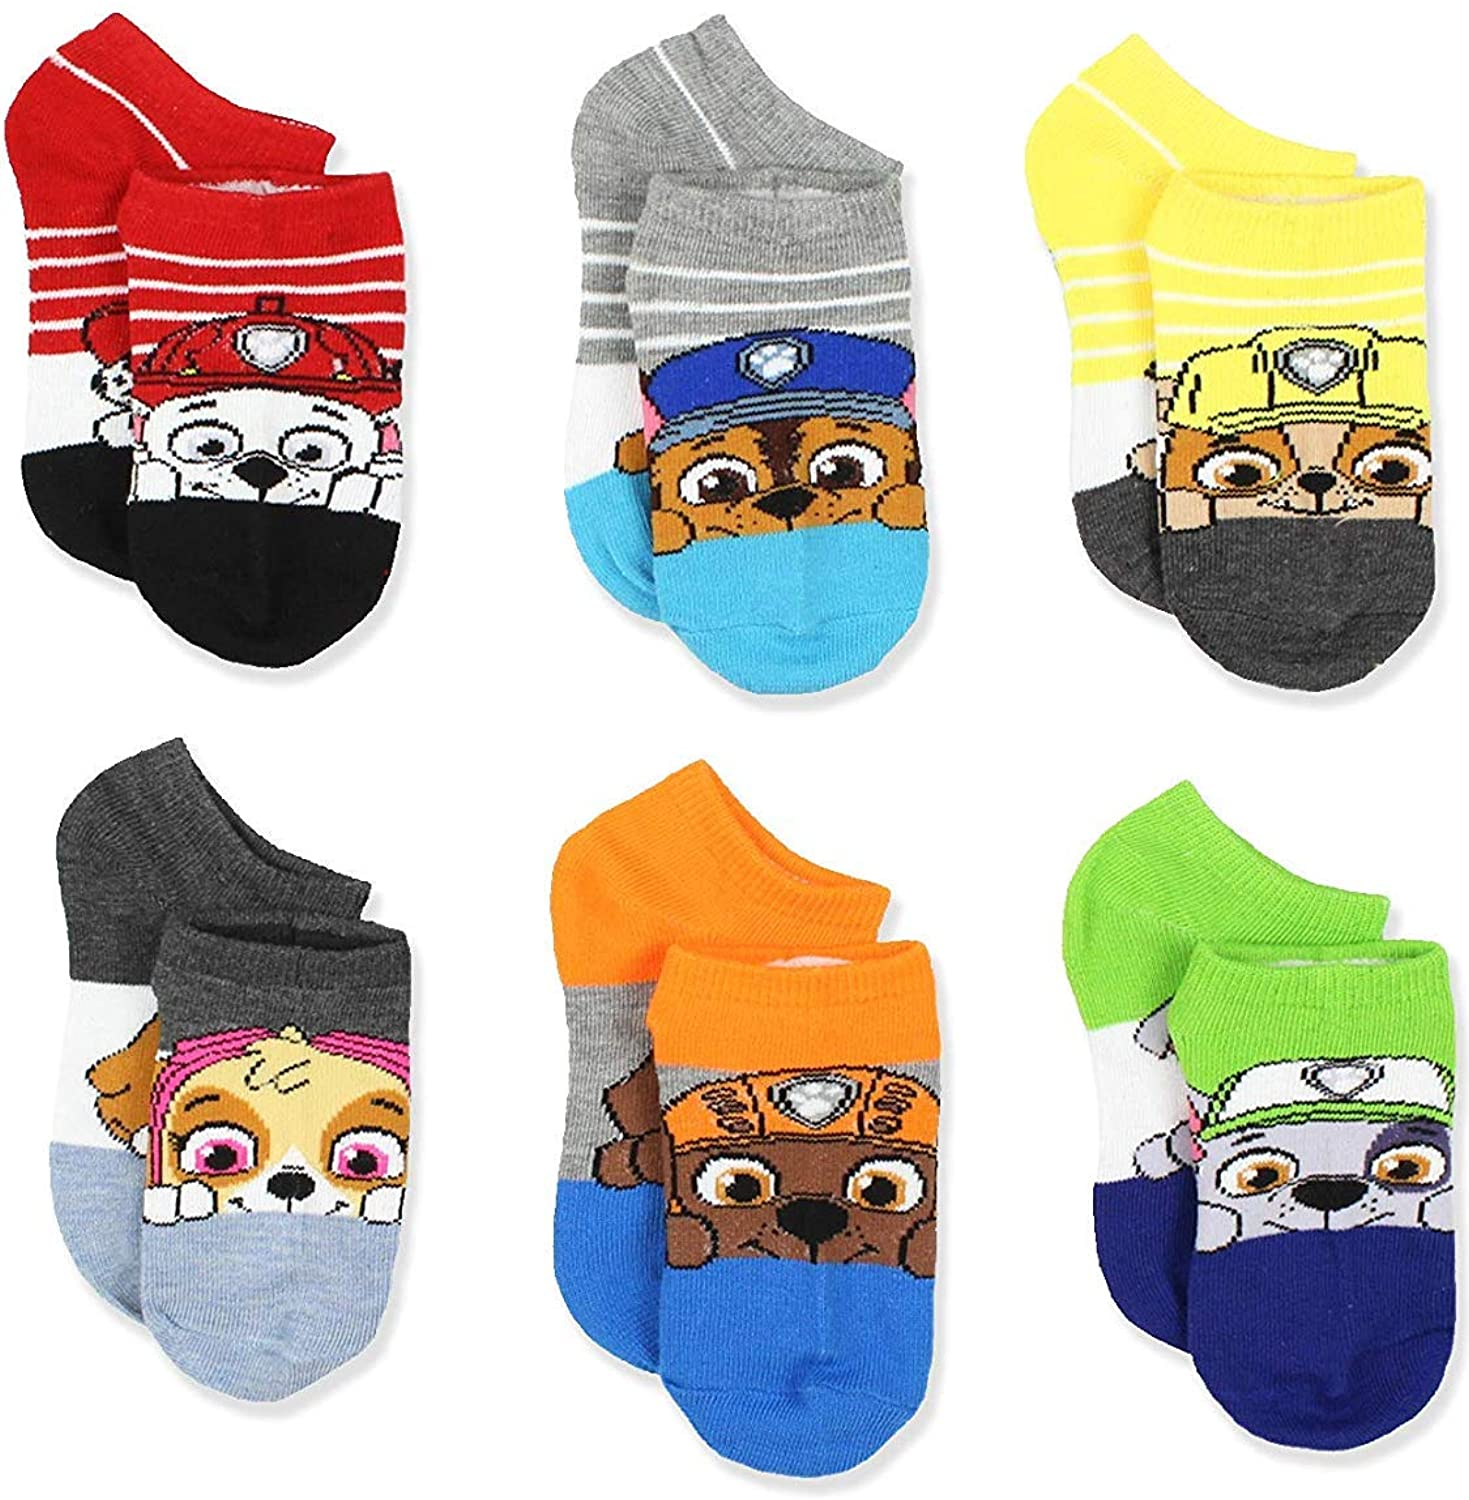 Nickelodeon Little Boy's Paw Patrol 6-Pack Character No Show Socks, Kids Shoe Size 10-4